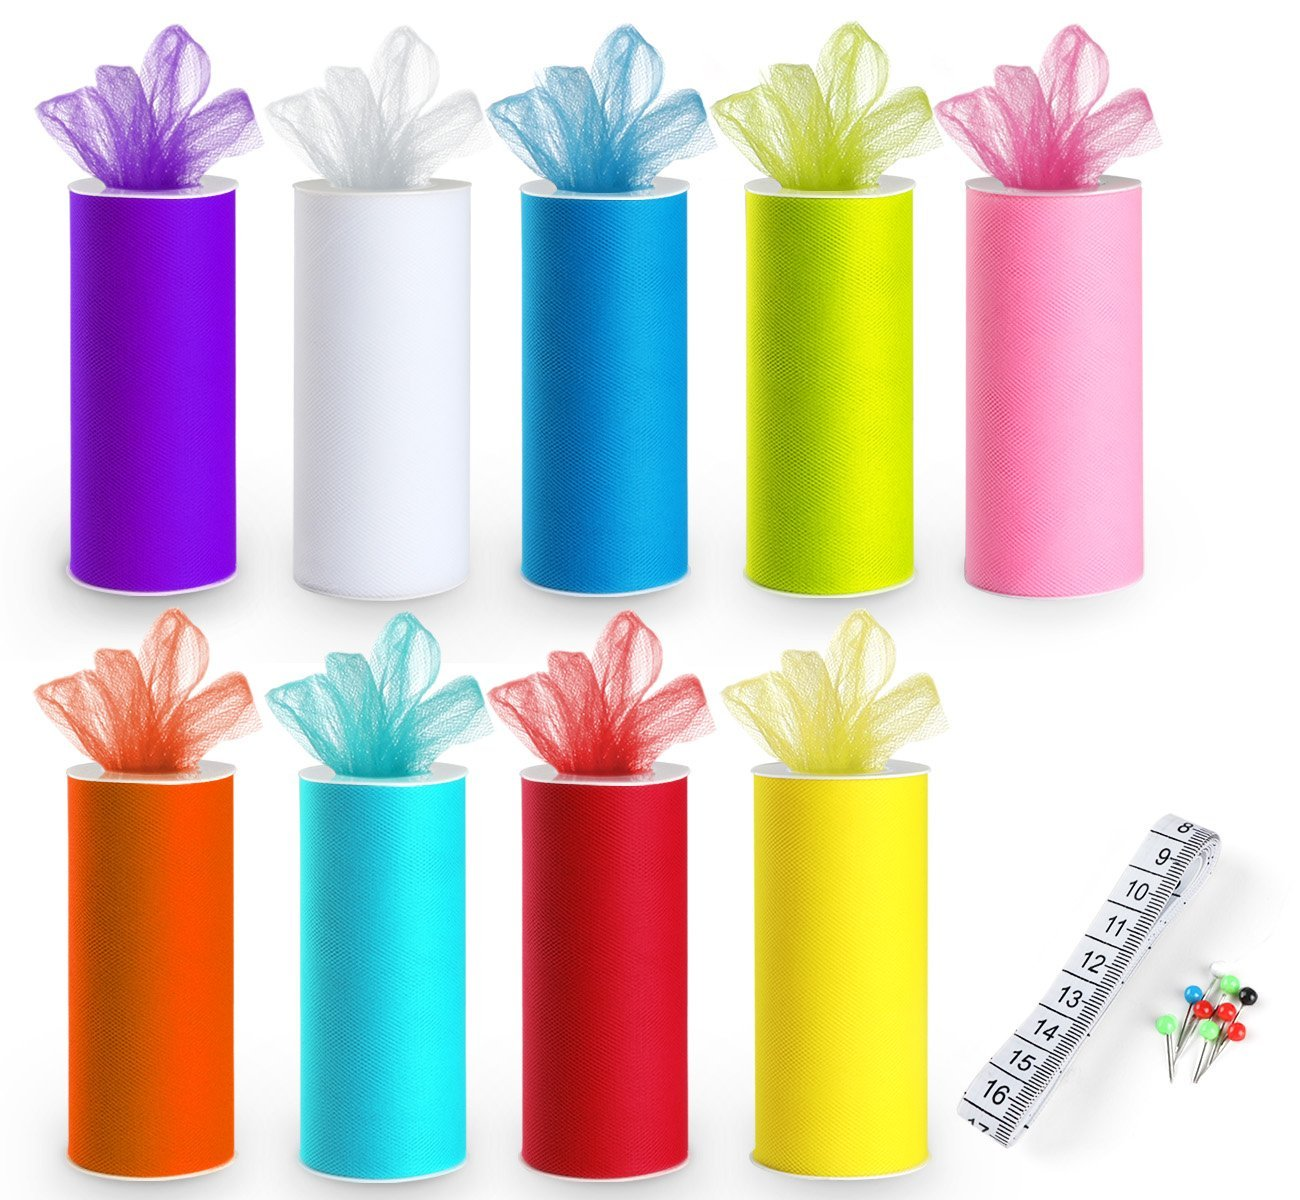 9 Tulle Rolls Rainbow Tulle Colors Roll Fabric Spool 6'' by 25 Yard Spool for Wedding Tutu and Table Skirt Decoration ilauke